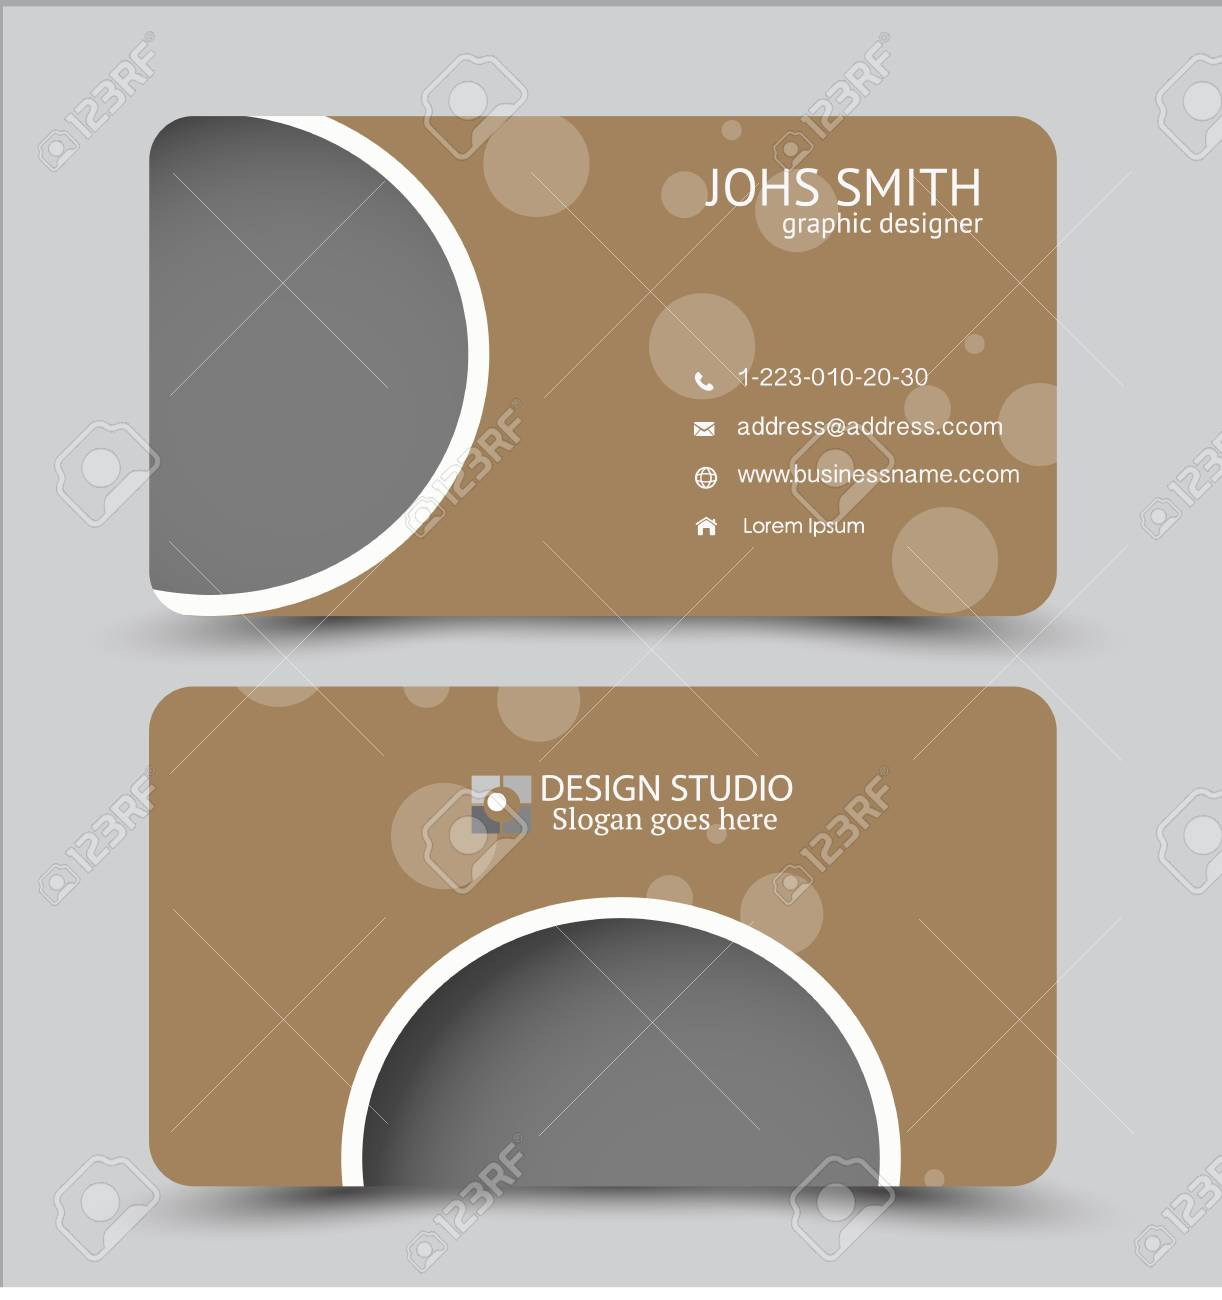 Business card design set template for company corporate style business card design set template for company corporate style vector illustration brown color colourmoves